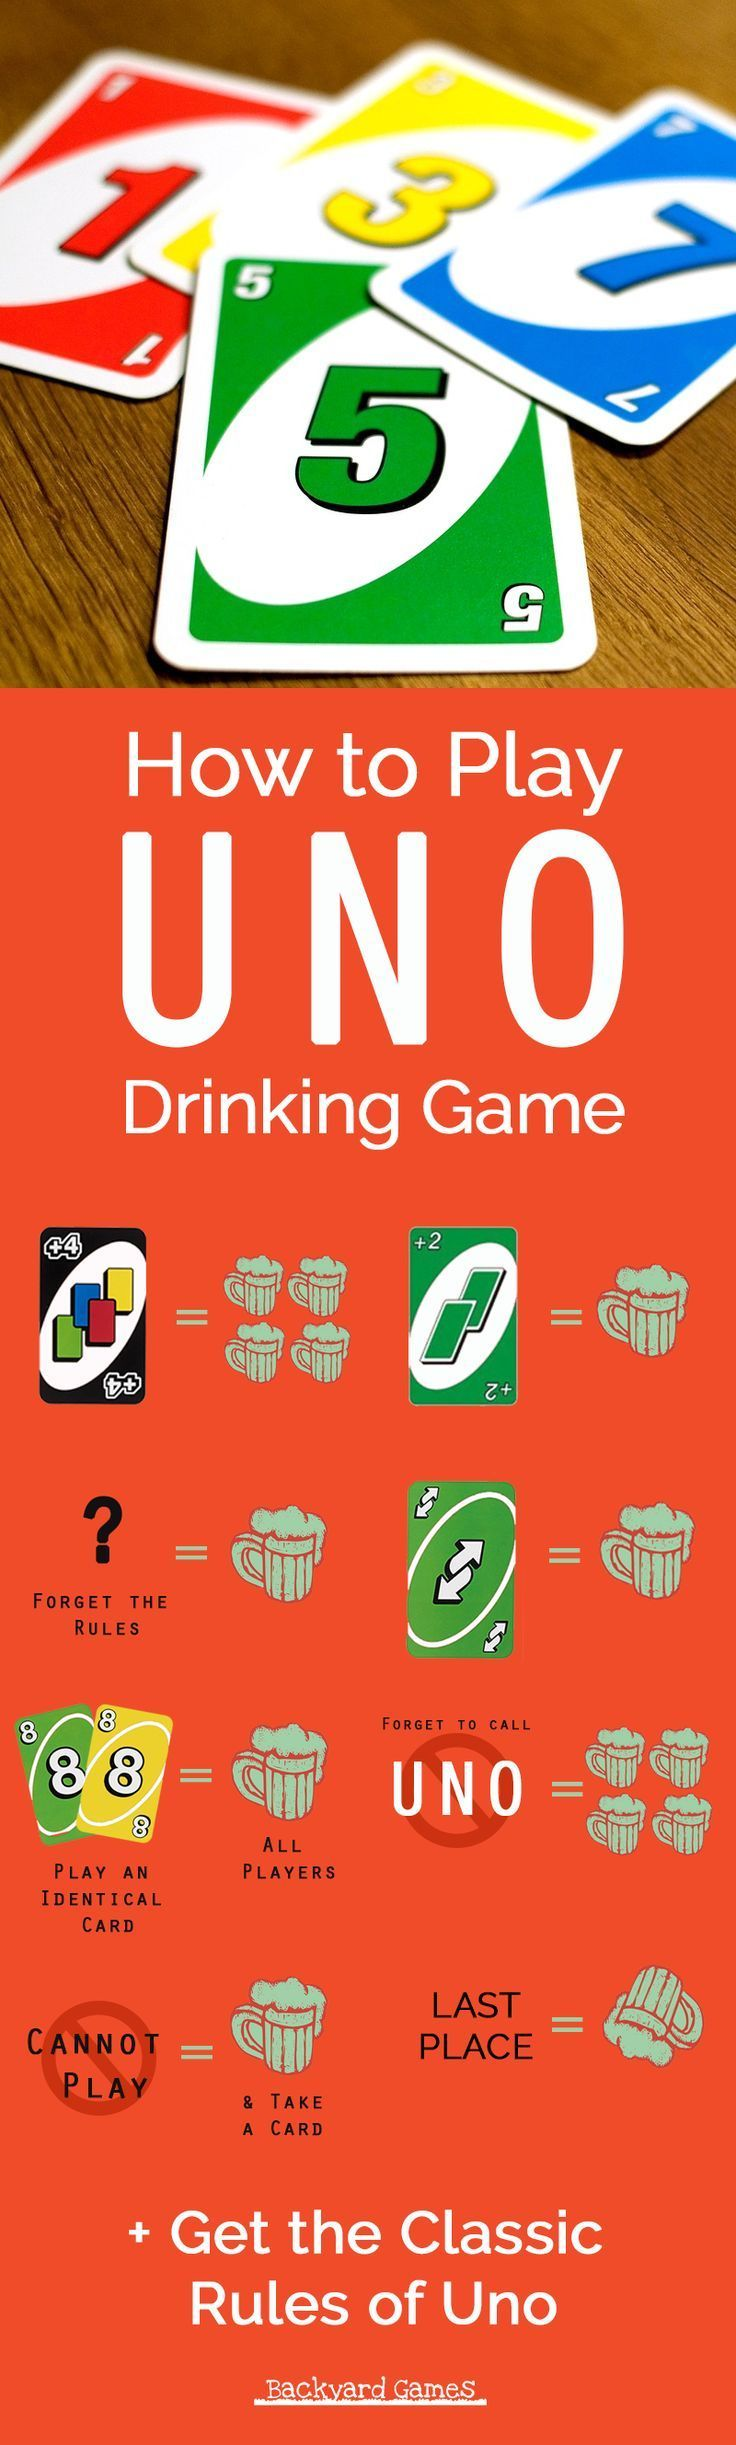 Drunk uno game rules